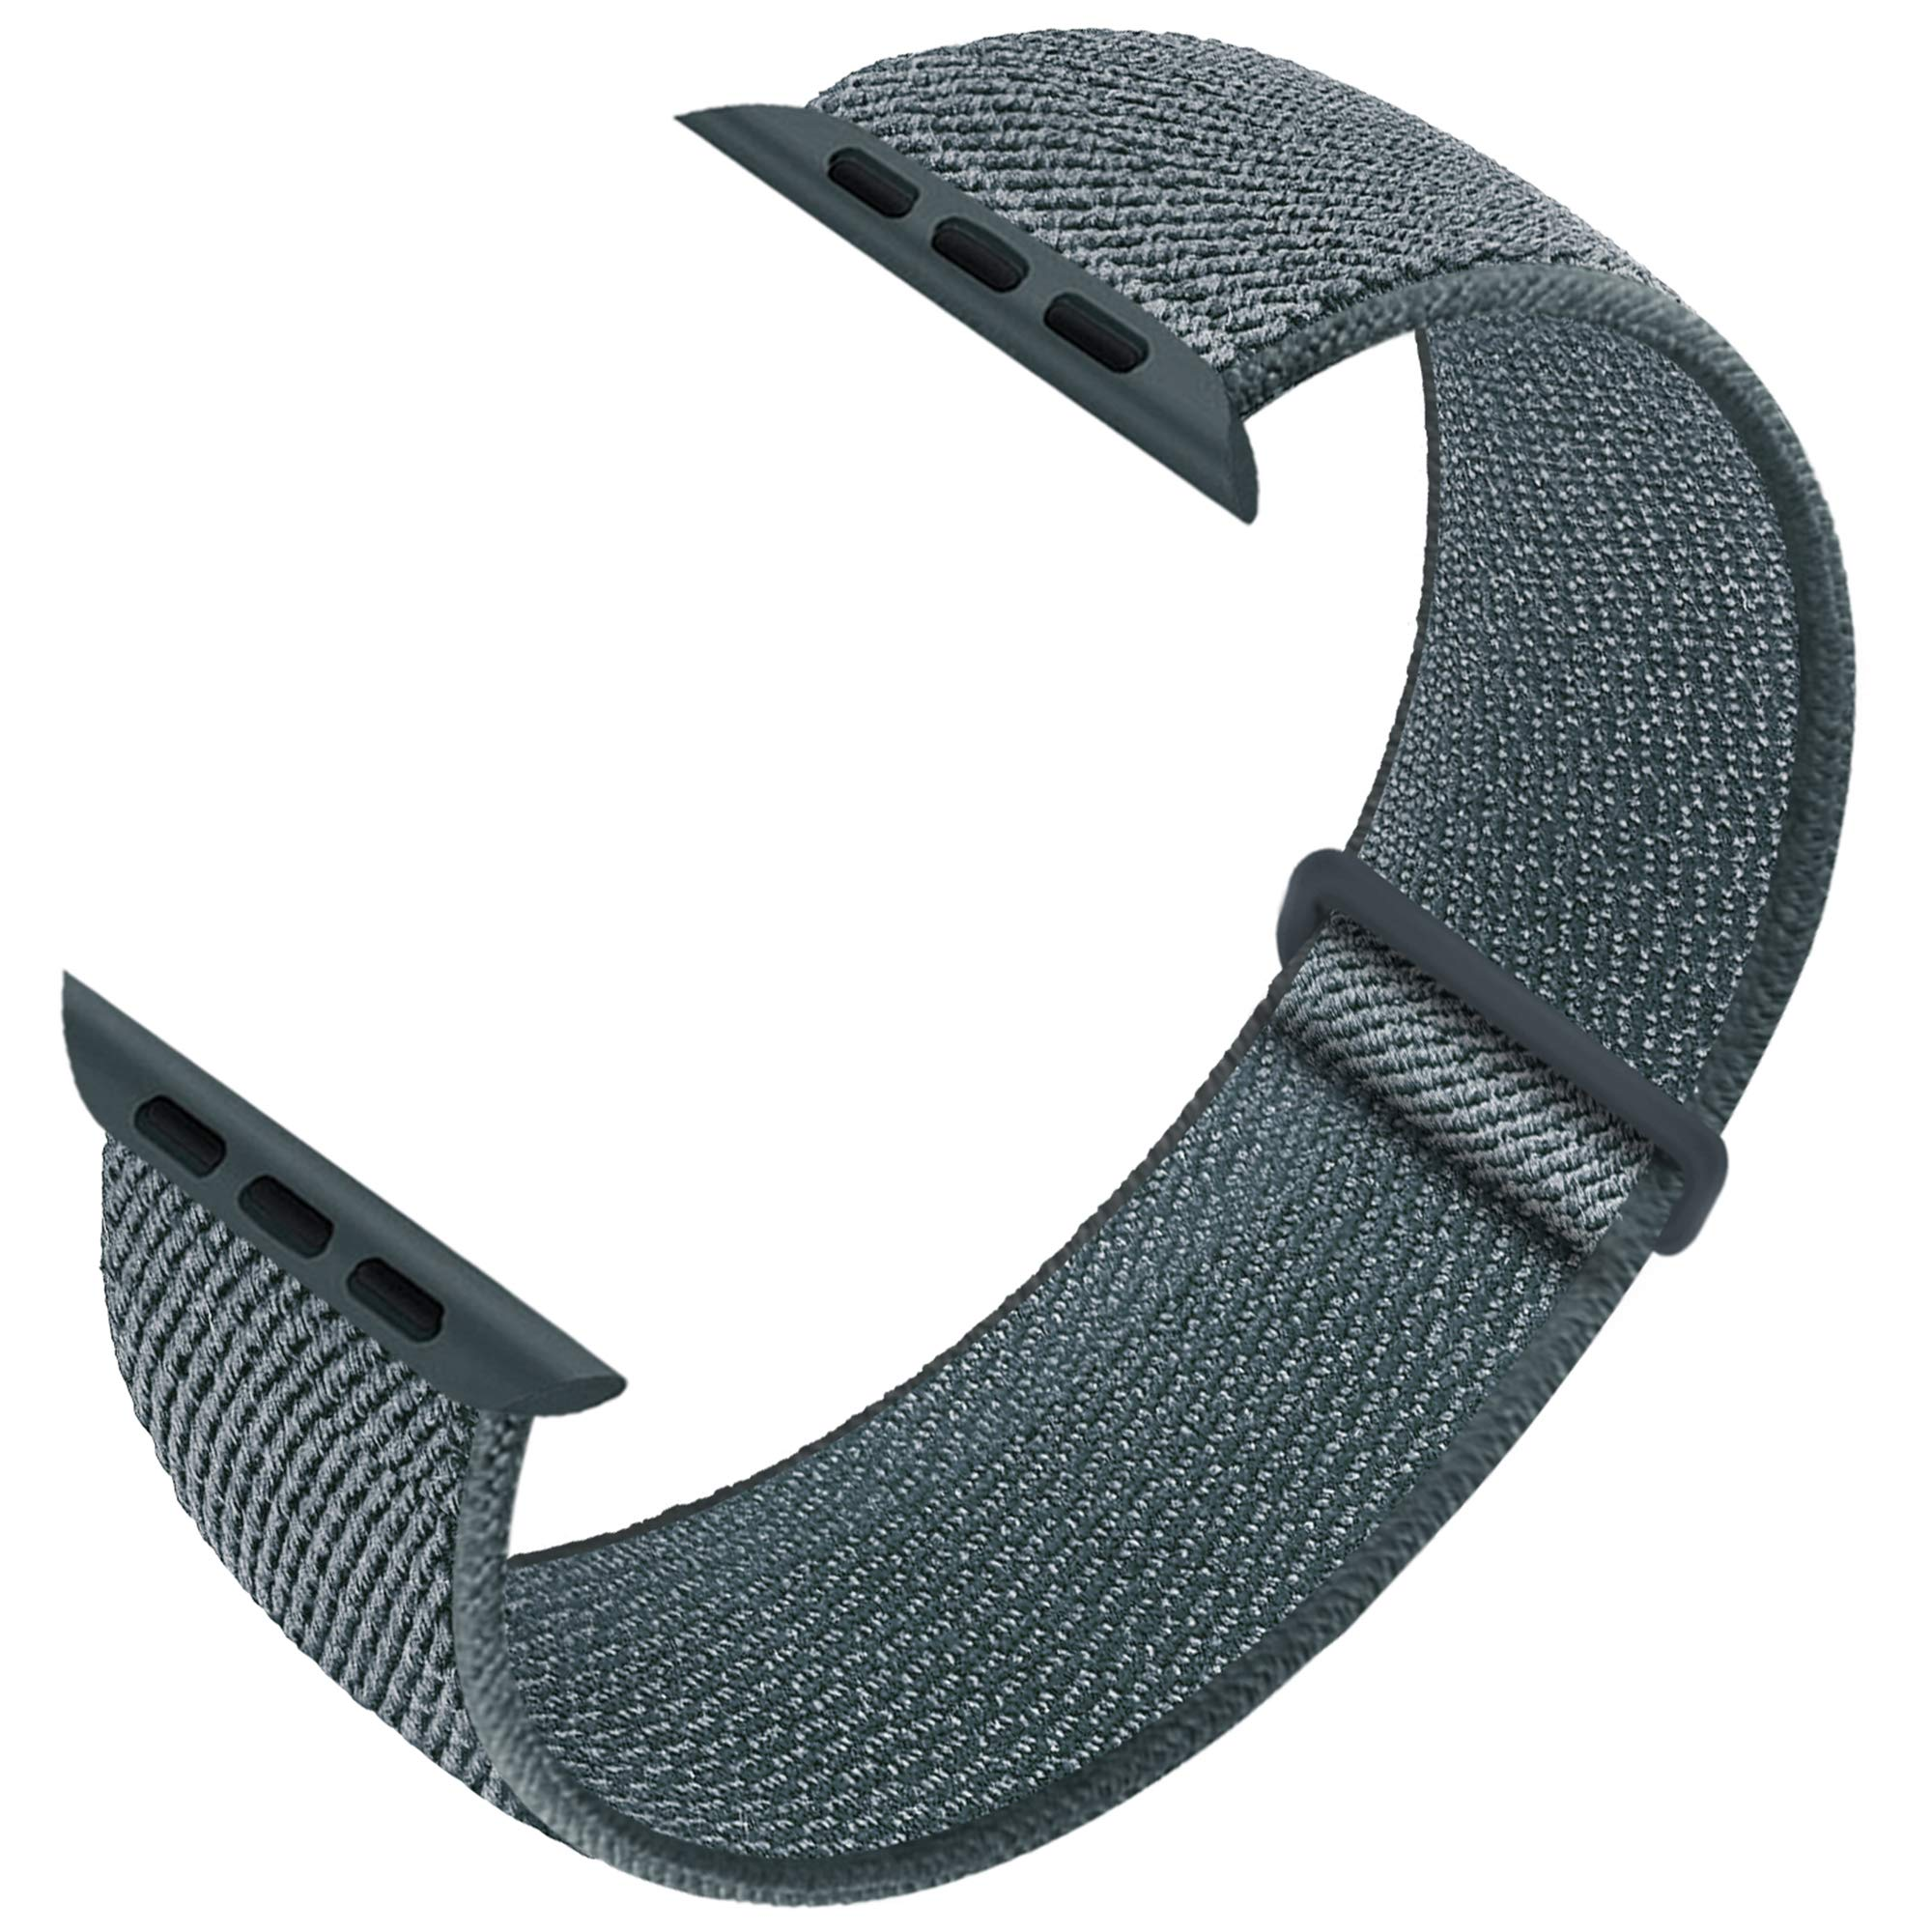 Sport Loop Band Compatible with Apple Watch Band 38mm 40mm 42mm 44mm iWatch Series 6 5 SE 4 3 2 1 Strap, Nylon Velcro Women Men Stretchy Elastic Braided Replacement Wristband Breath Soft Light